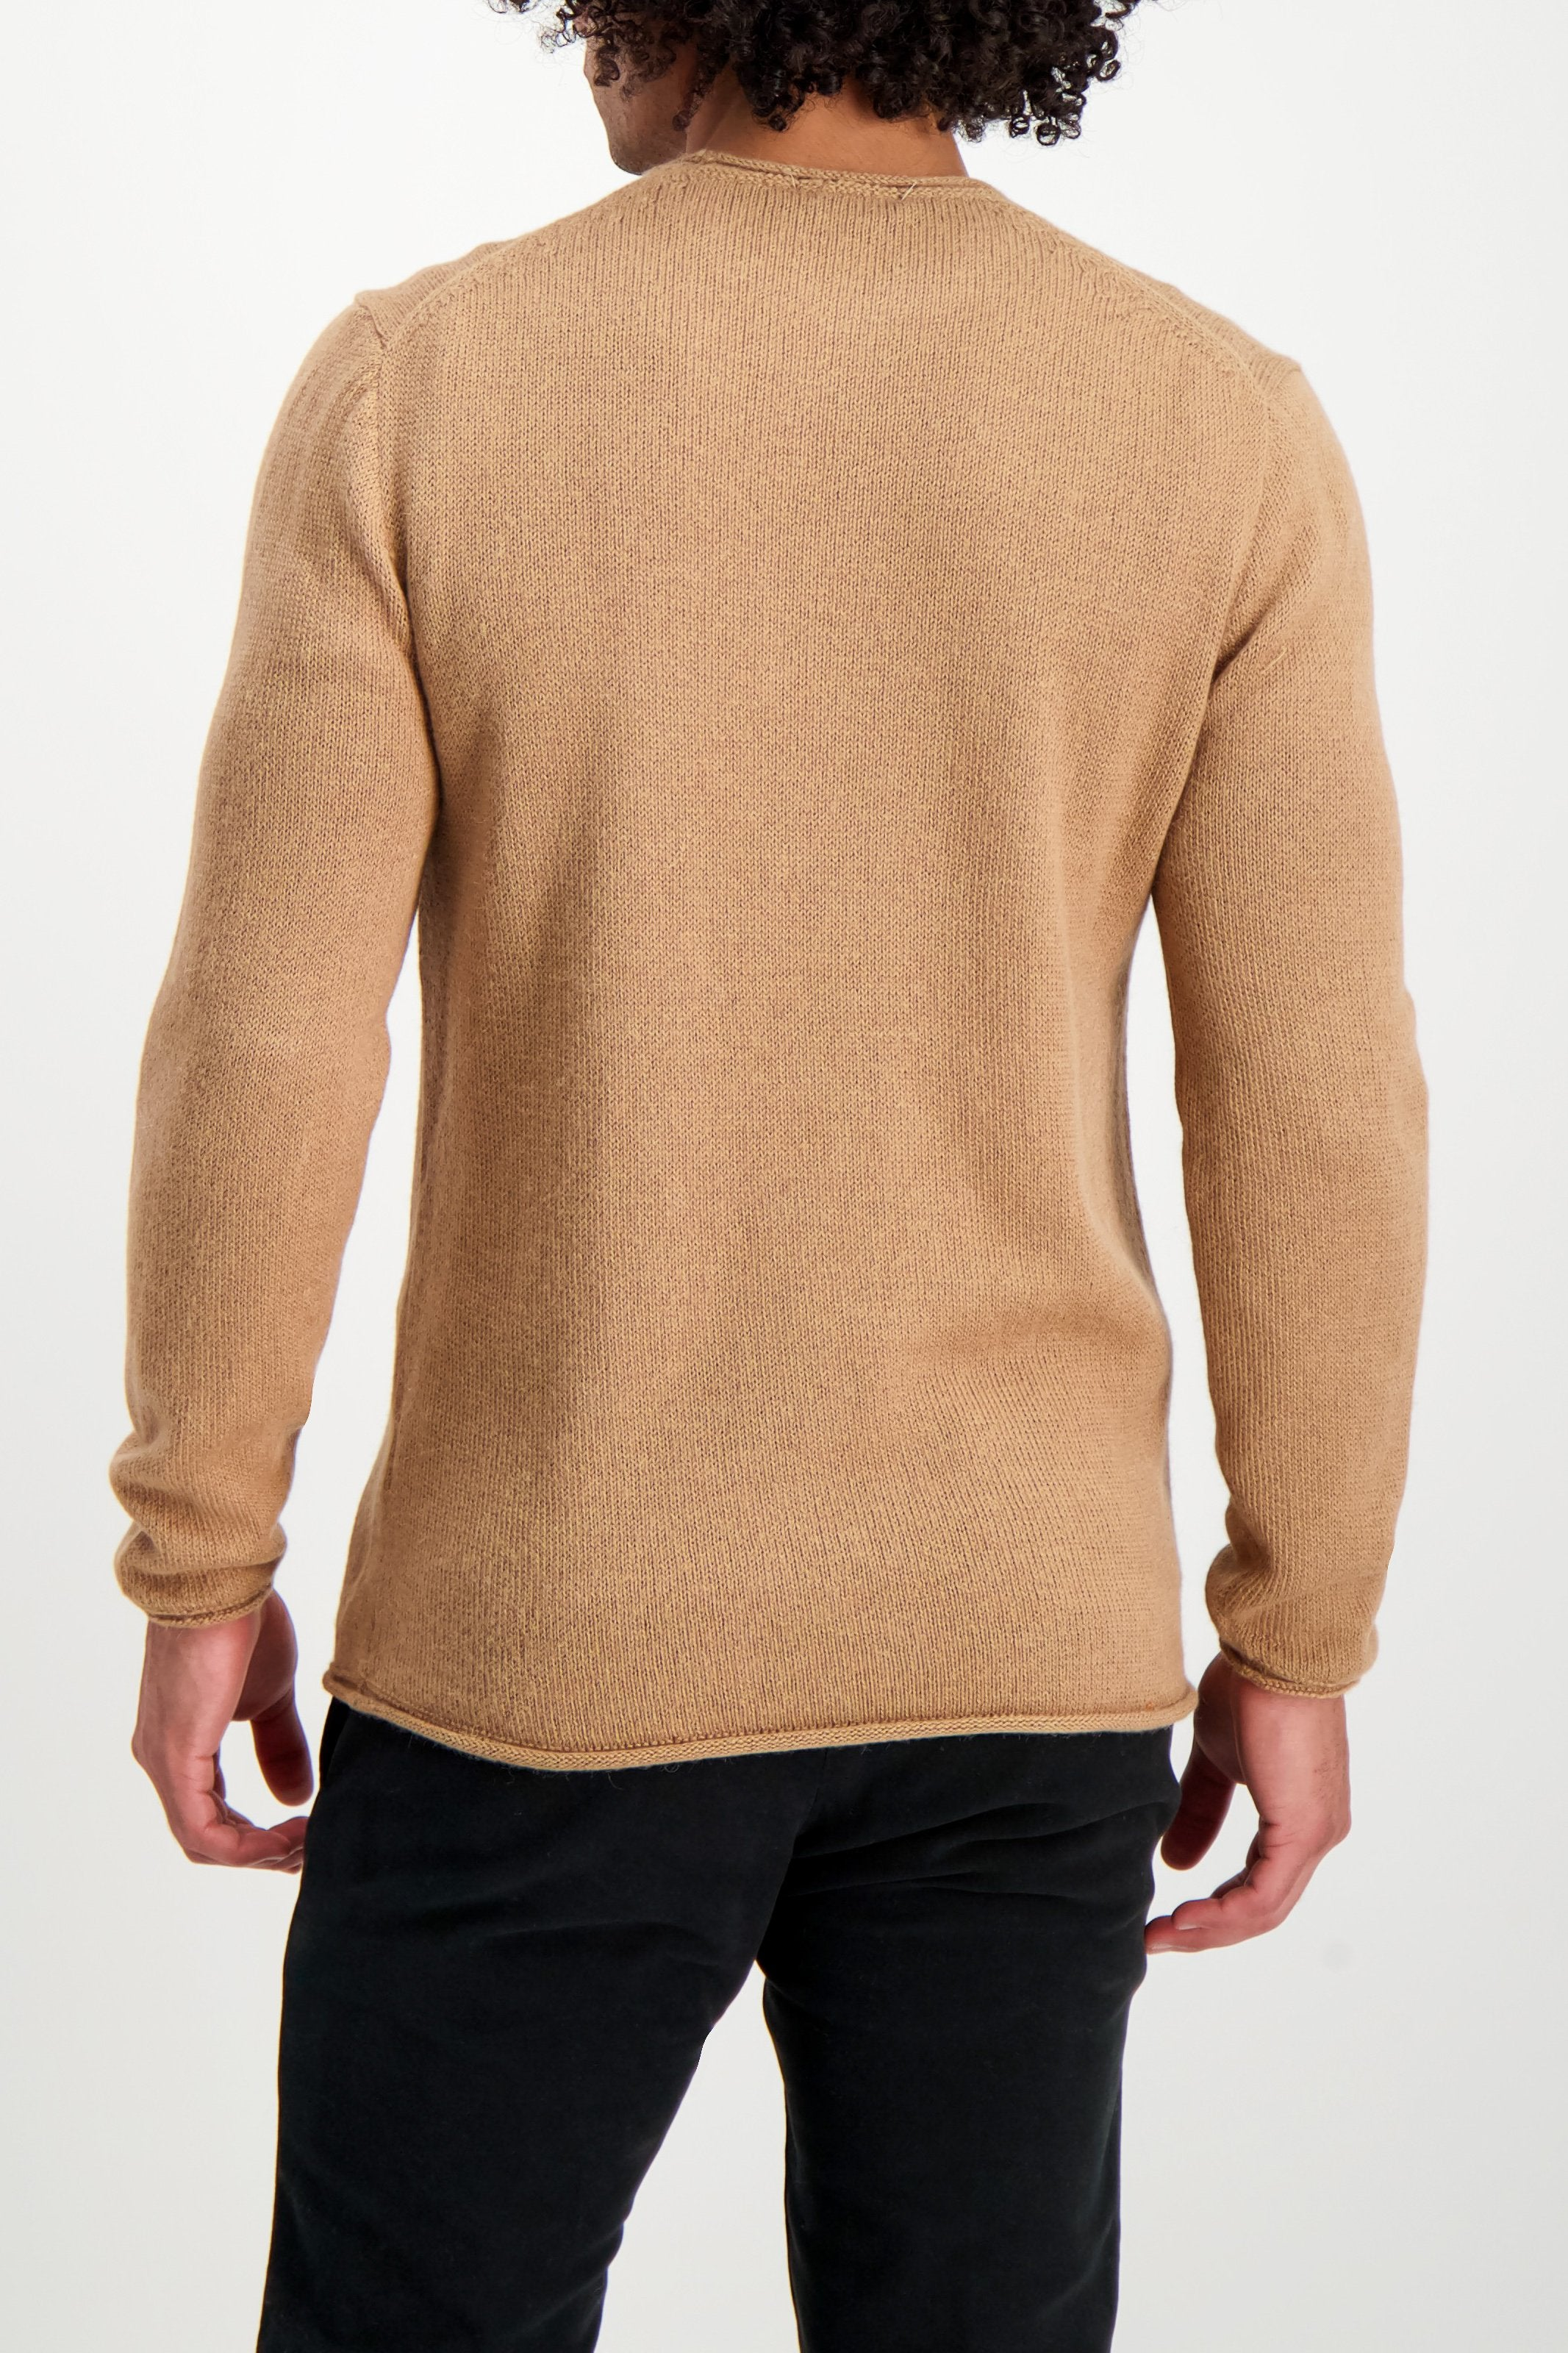 Back Crop Image Of Model Wearing Boiled Alpaca Tunic Sweater Camel